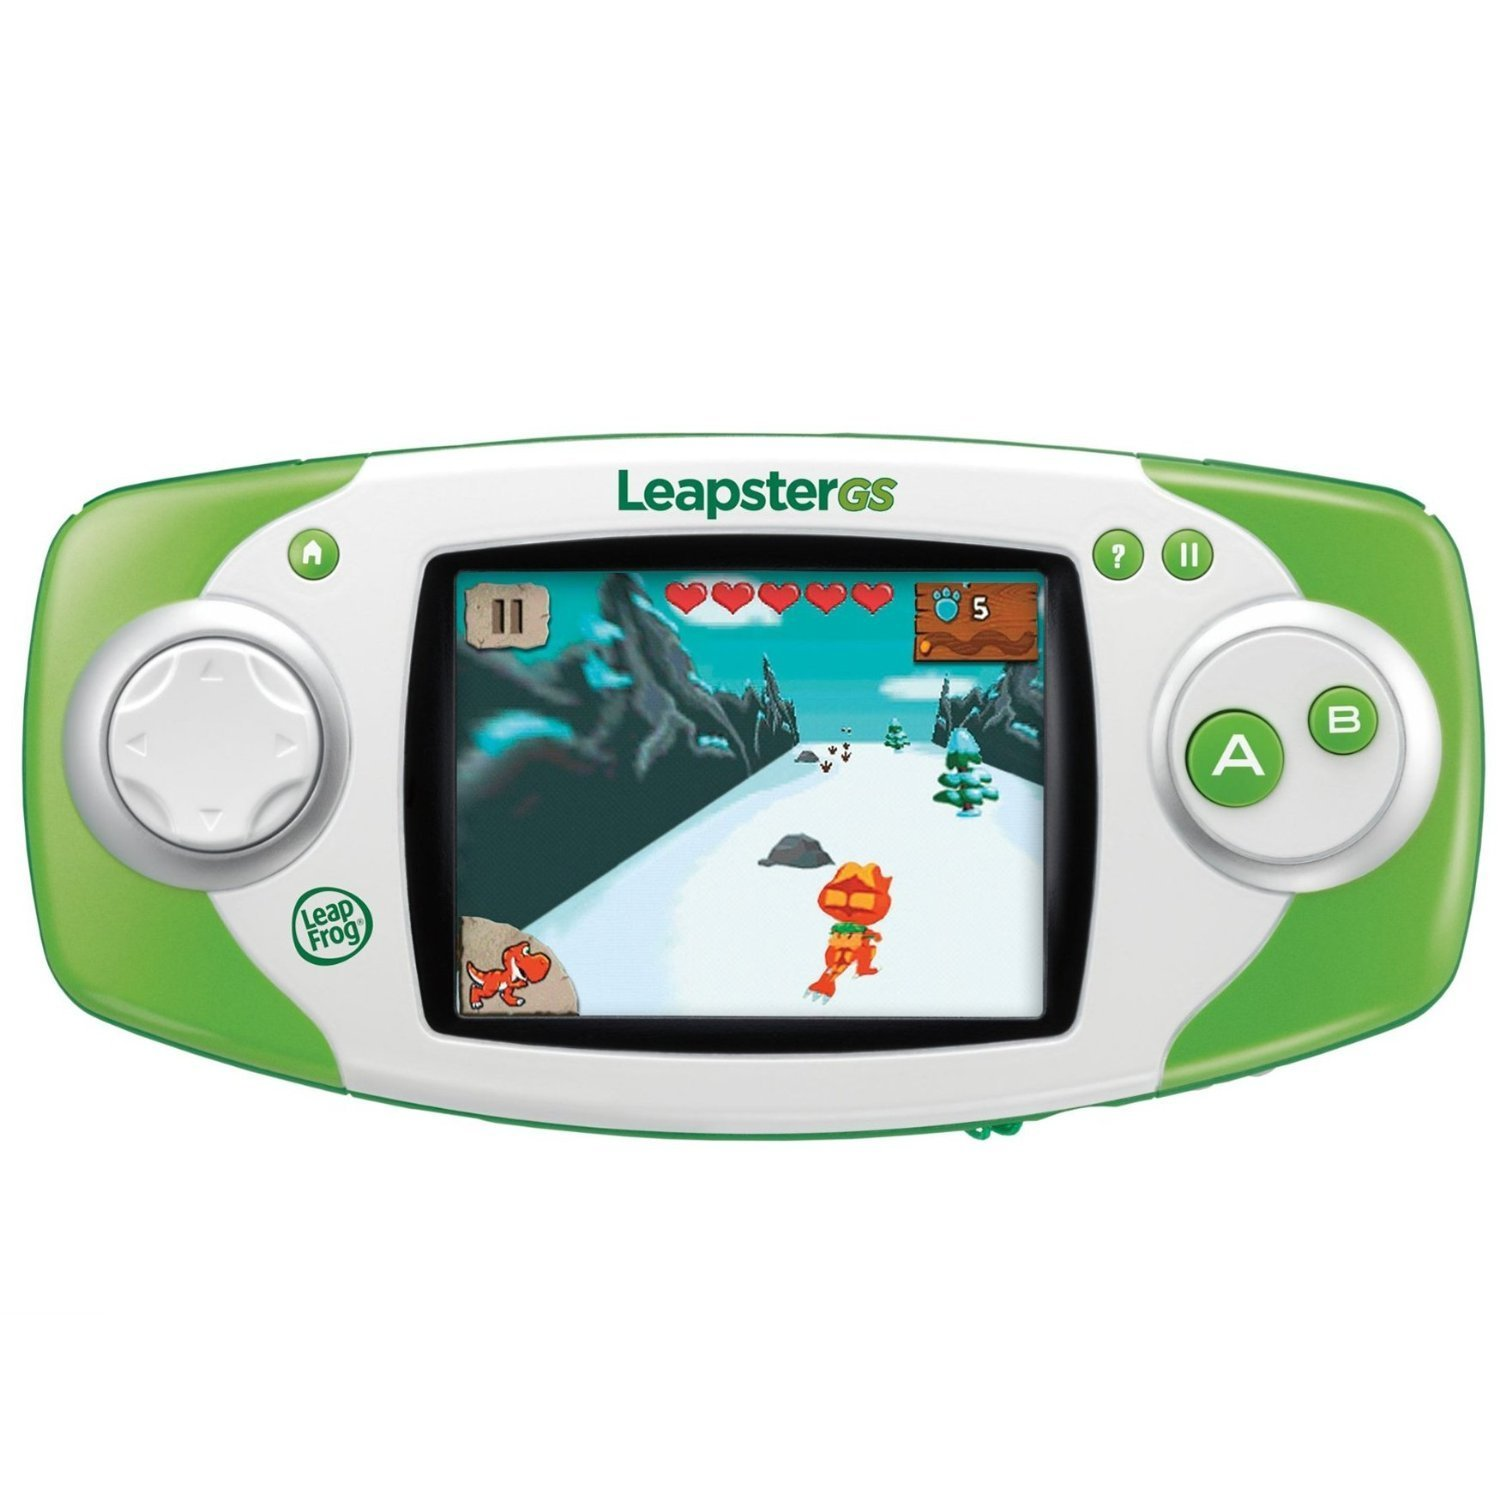 LeapFrog Leapster GS Explorer Handheld Kids Learning Tablet with Kid-Friendly Controls, Green (Refurbished) by LeapFrog